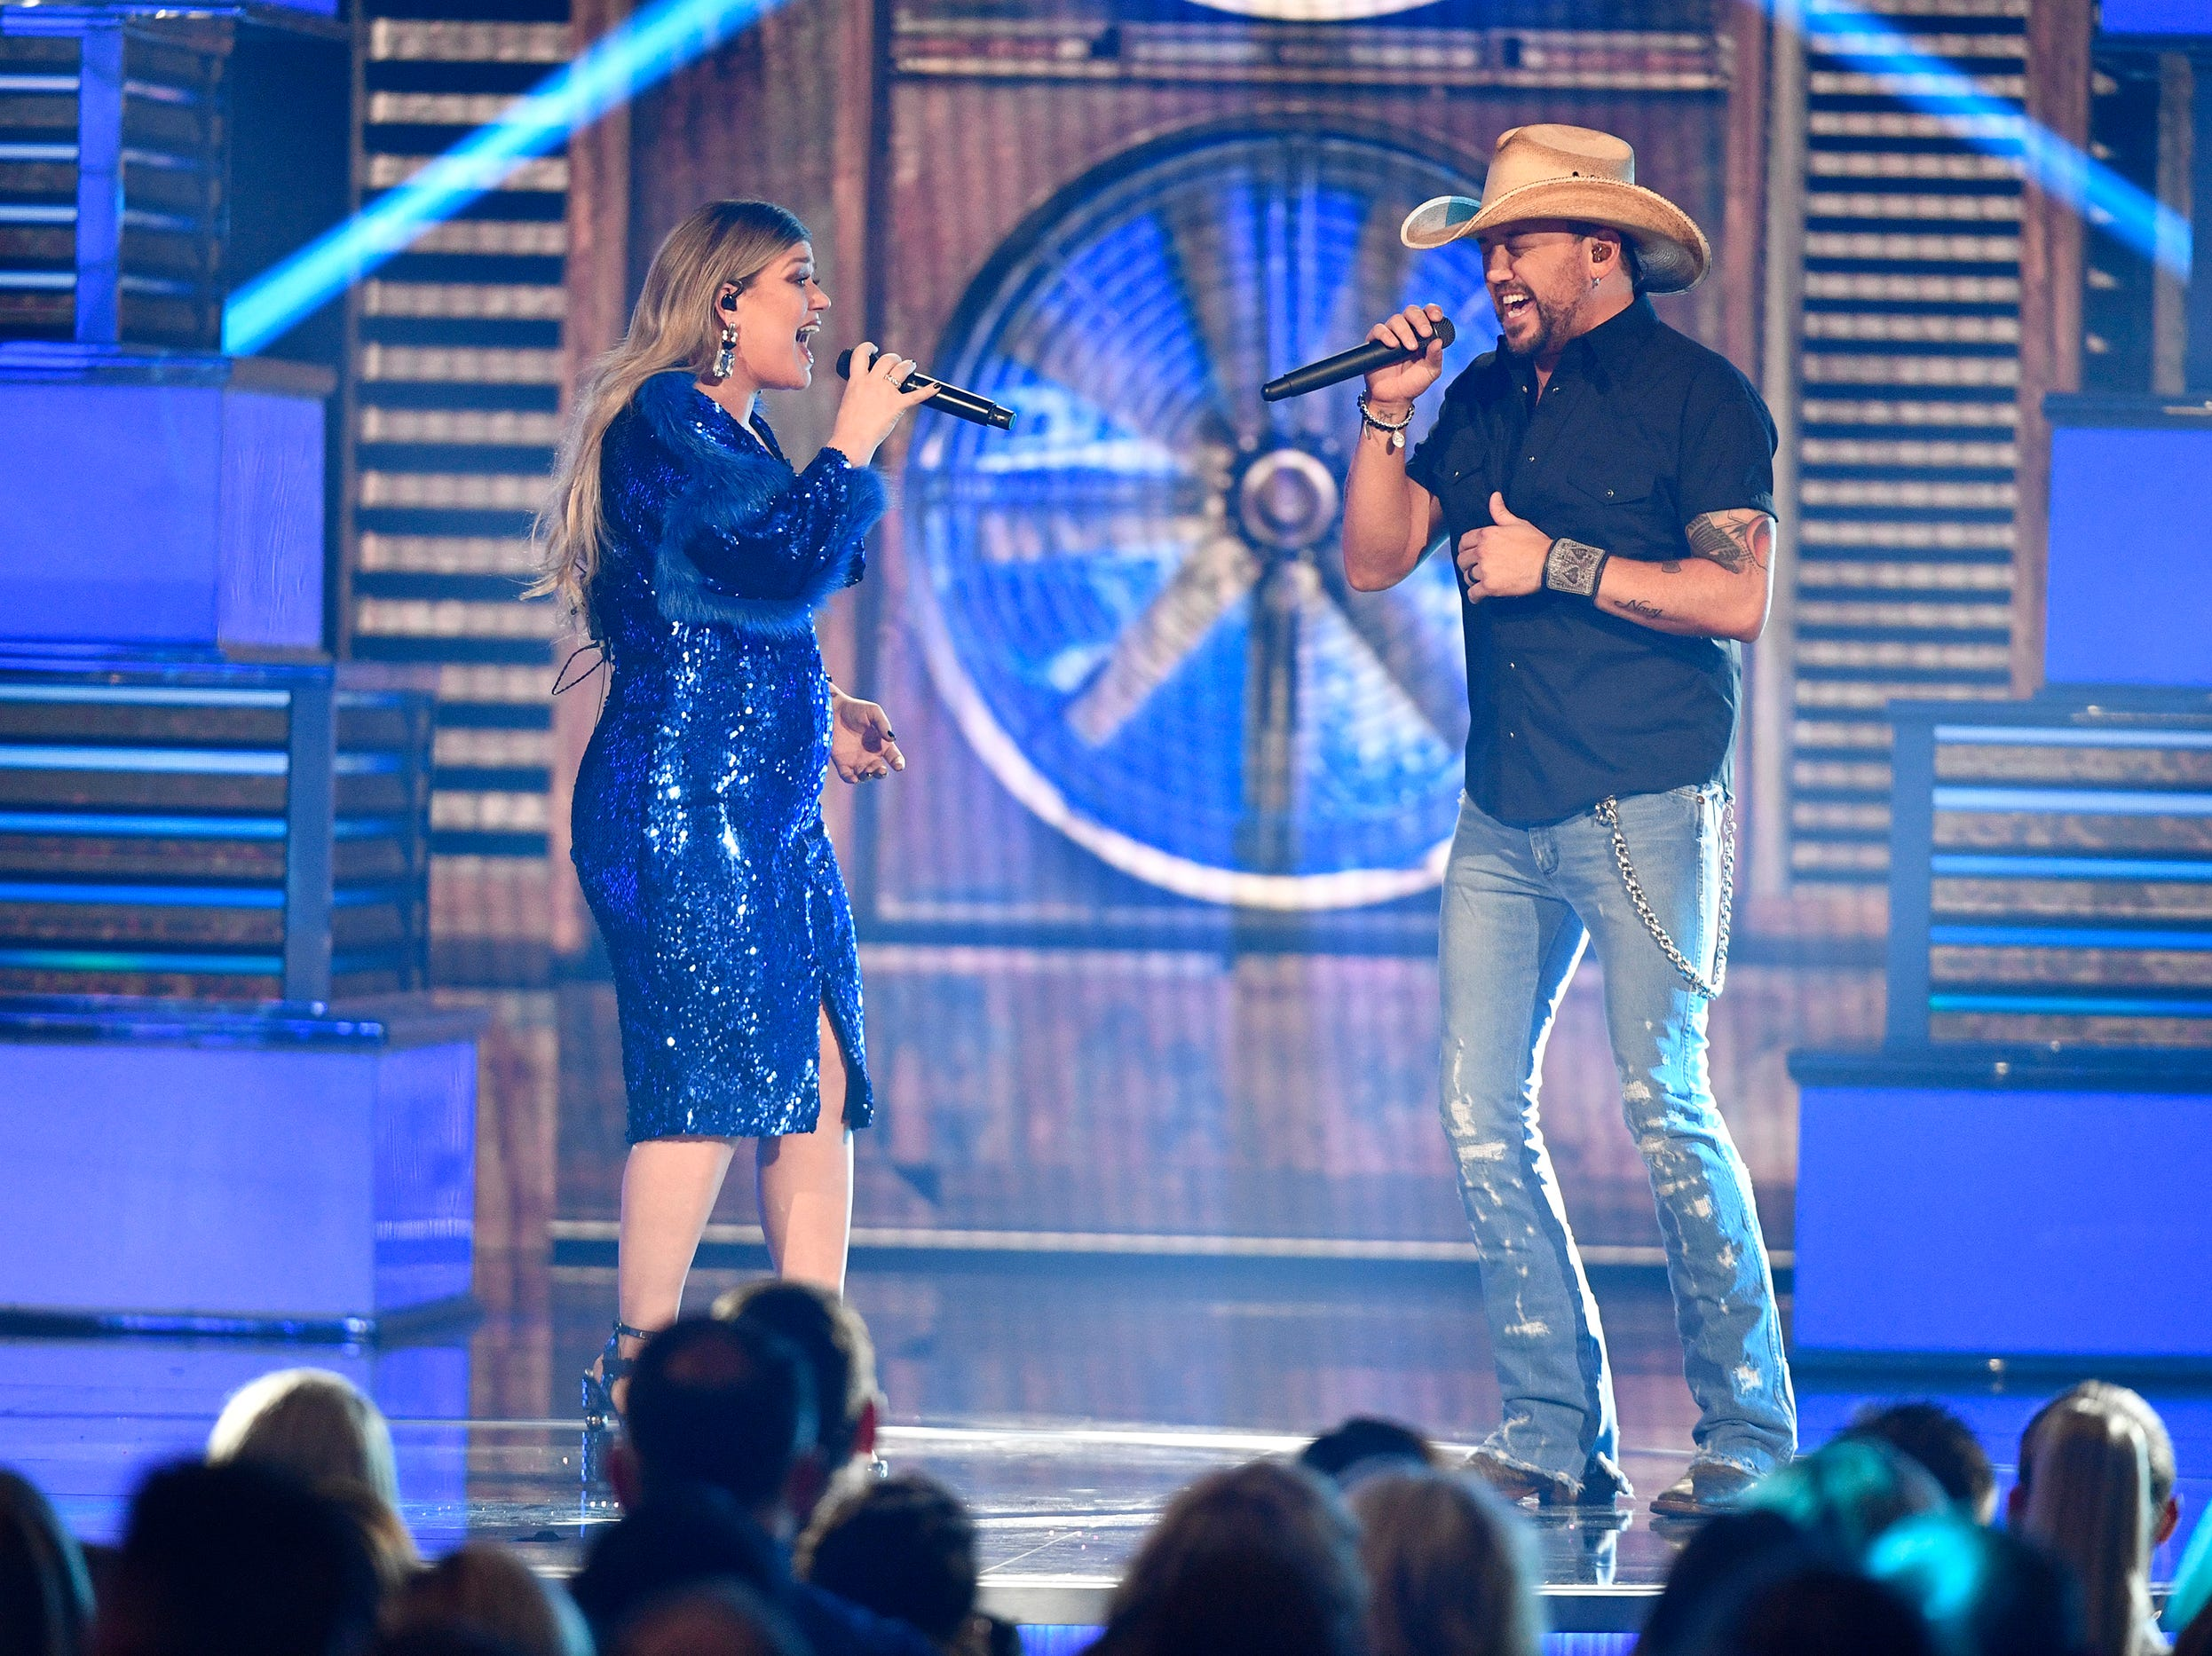 Kelly Clarkson, left, and Jason Aldean, perform during the 54TH Academy of Country Music Awards Sunday, April 7, 2019, in Las Vegas, Nev.